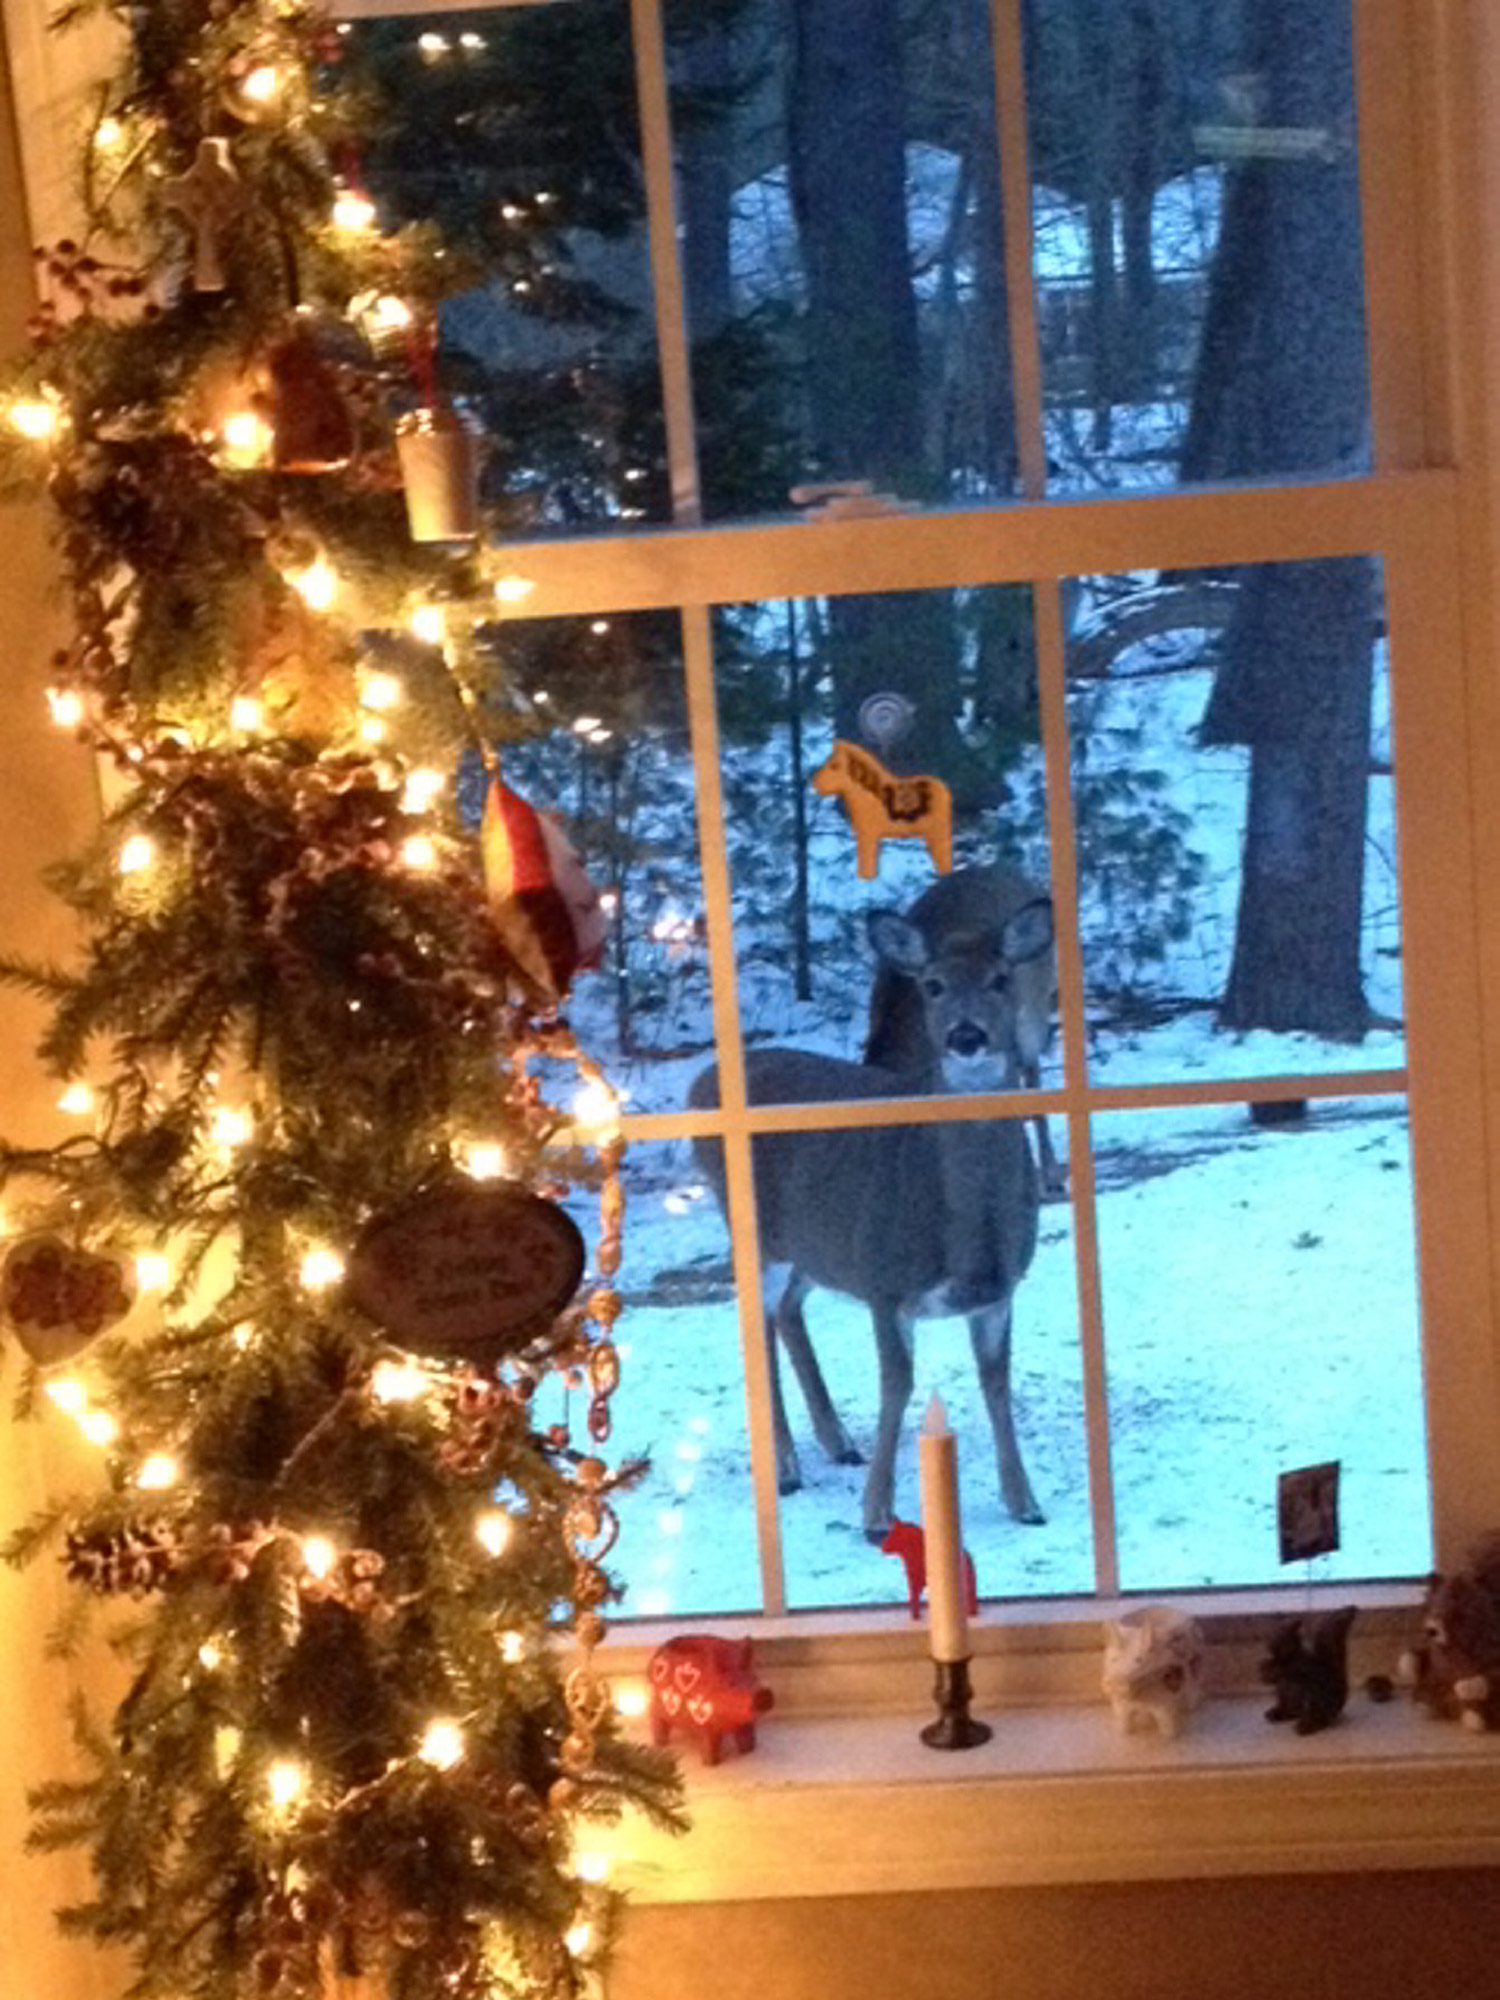 So where's Santa? Sliding down the chimney a little early at this Gorham home? And shouldn't those deer be on the rooftop?